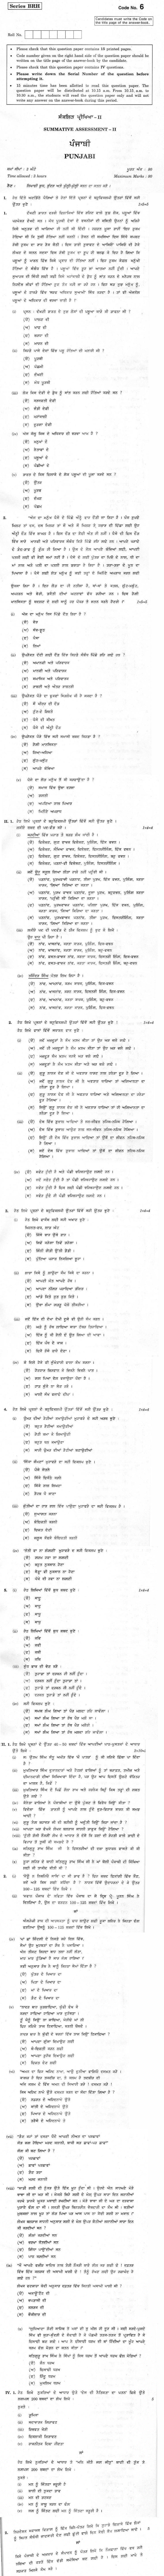 CBSE Class X Previous Year Question Papers 2012 Punjabi